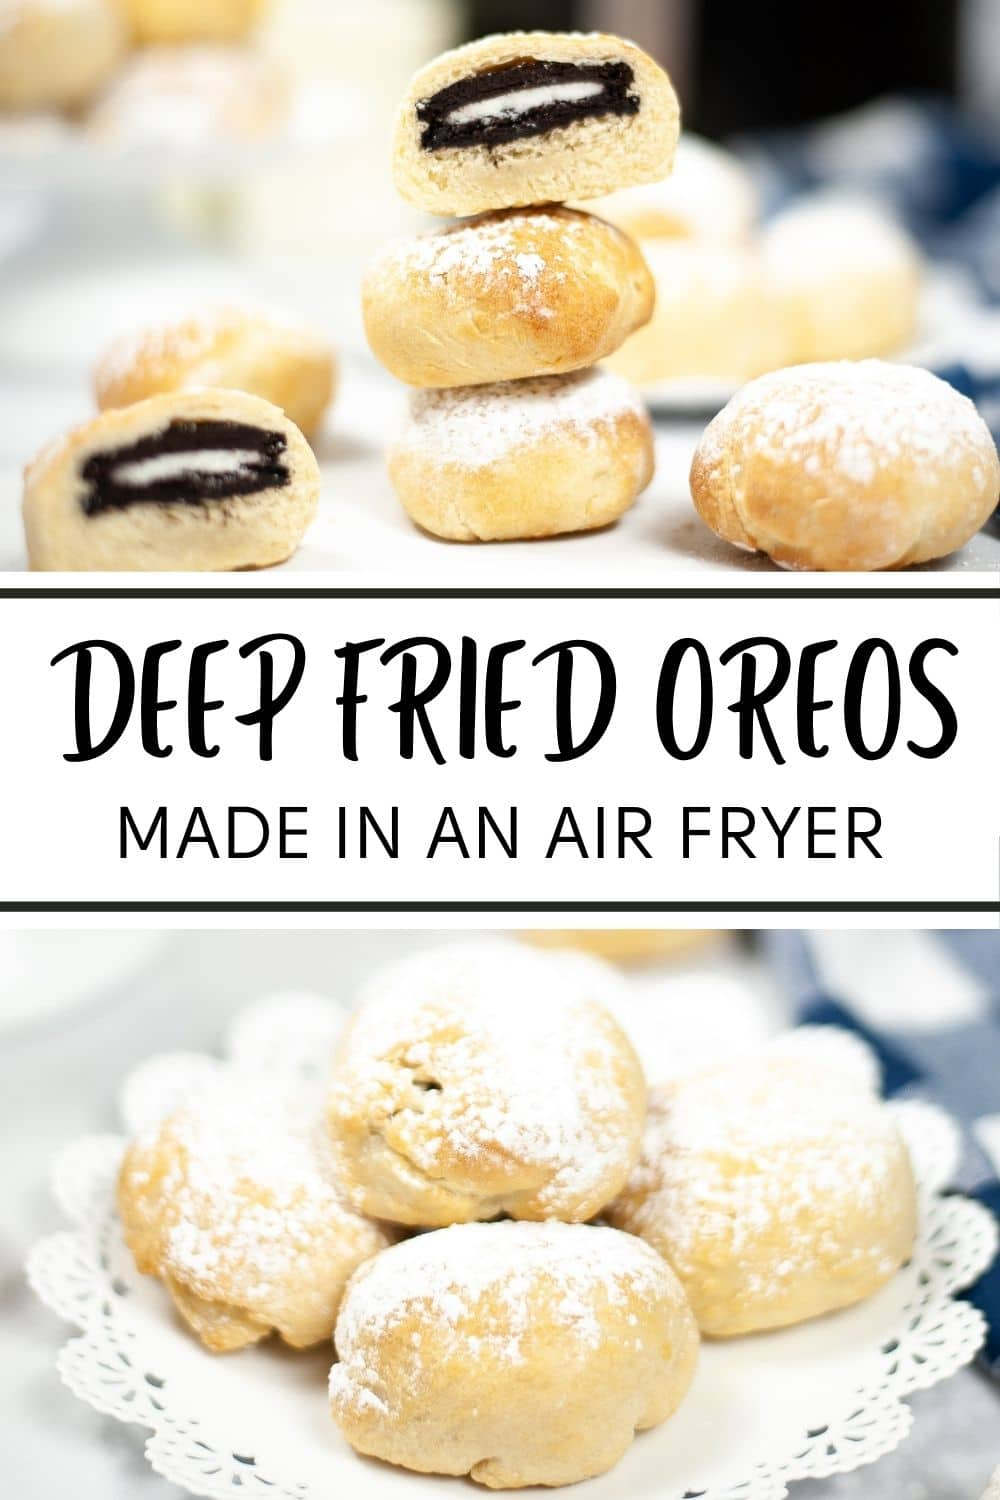 These Air Fryer Deep Fried Oreos let you indulge in delicious fair food with less guilt! #airfryer #oreos #cookies via @wondermomwannab